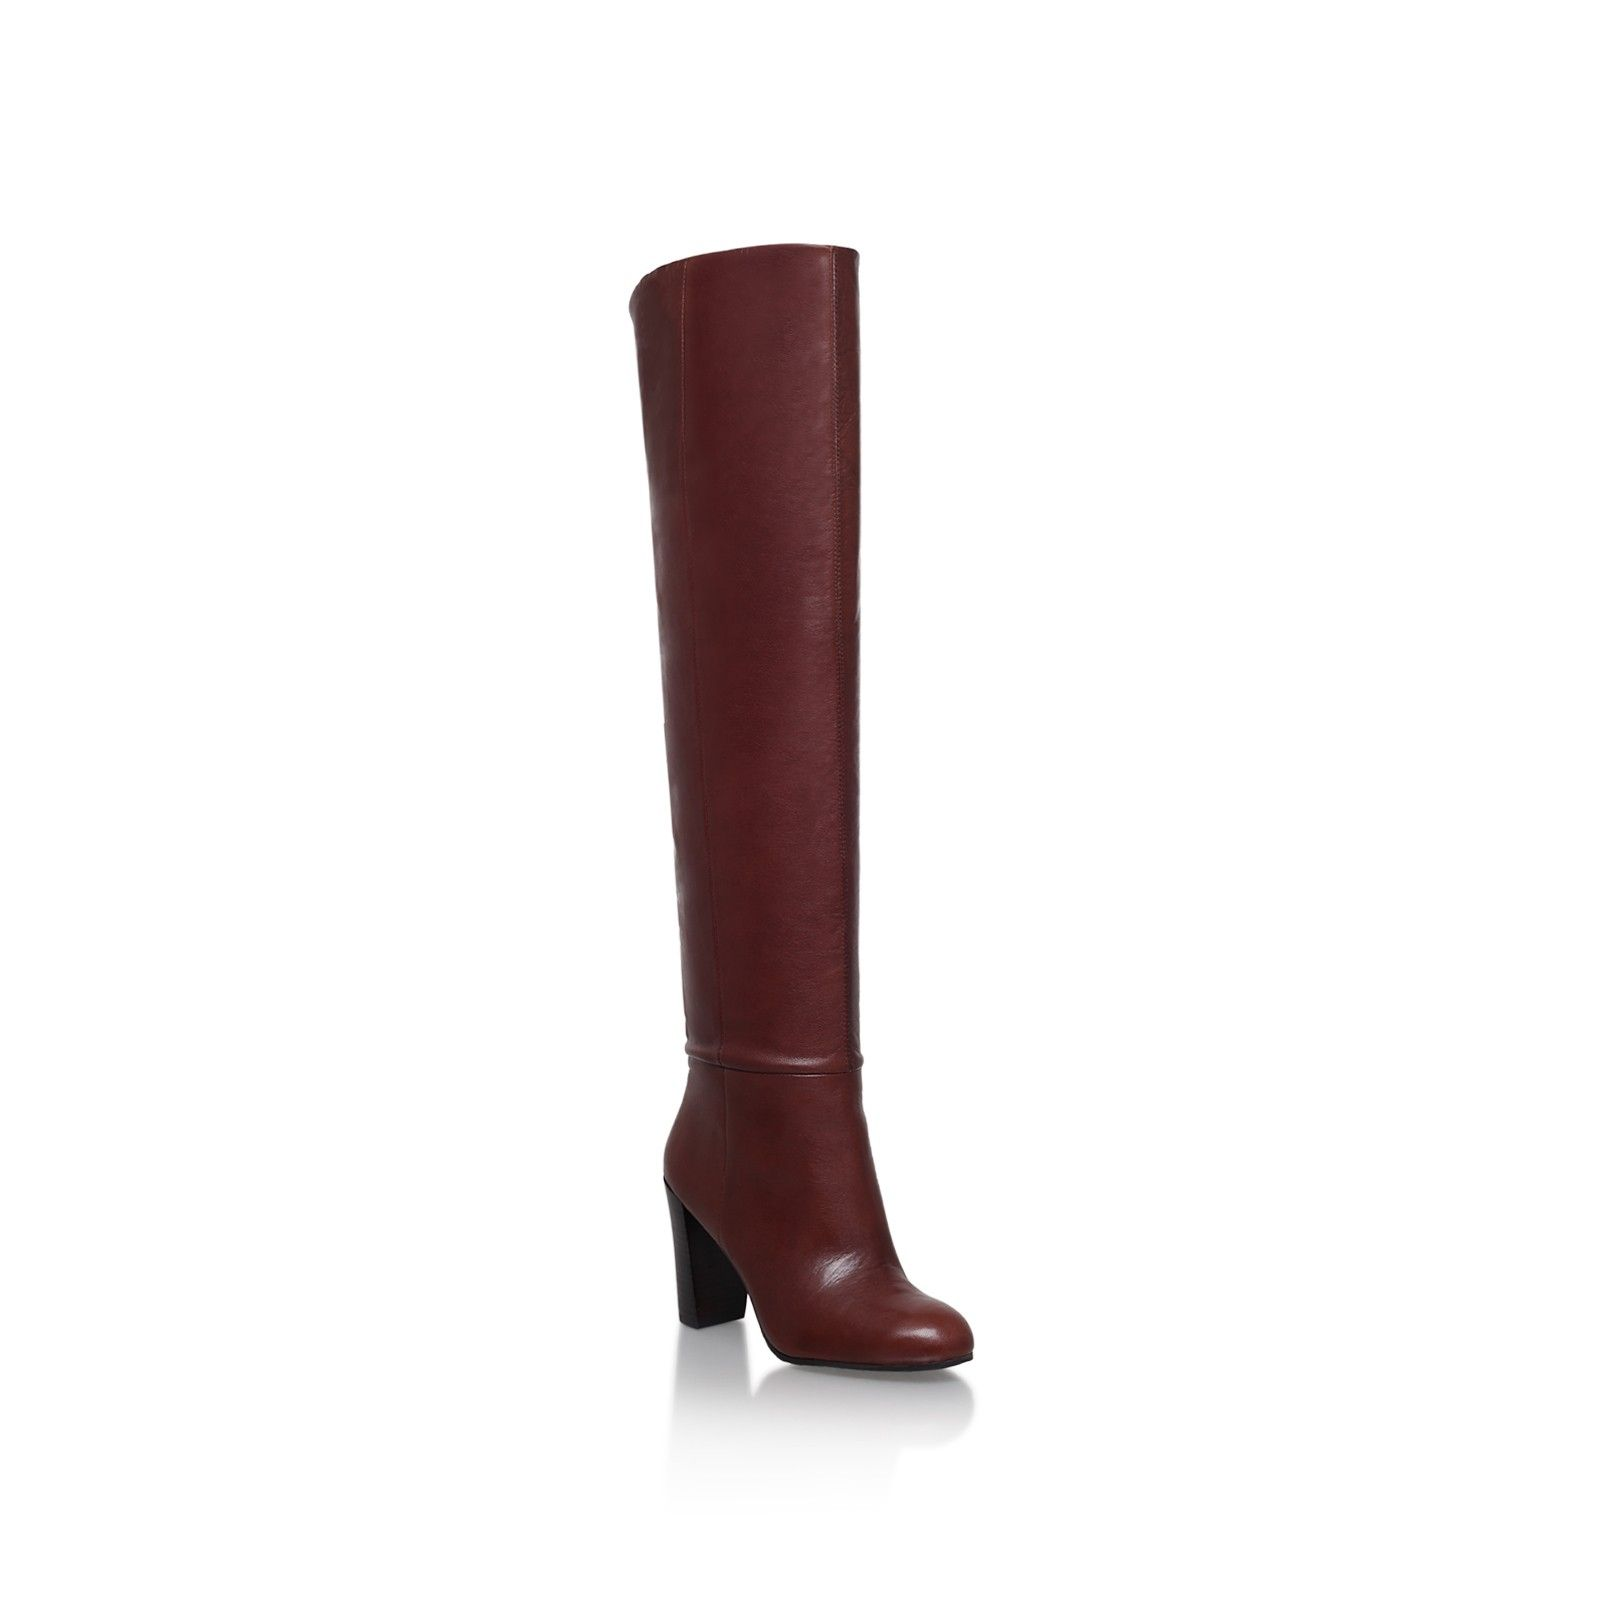 79b67589f04 snowfall brown high heel over the knee boots from Nine West